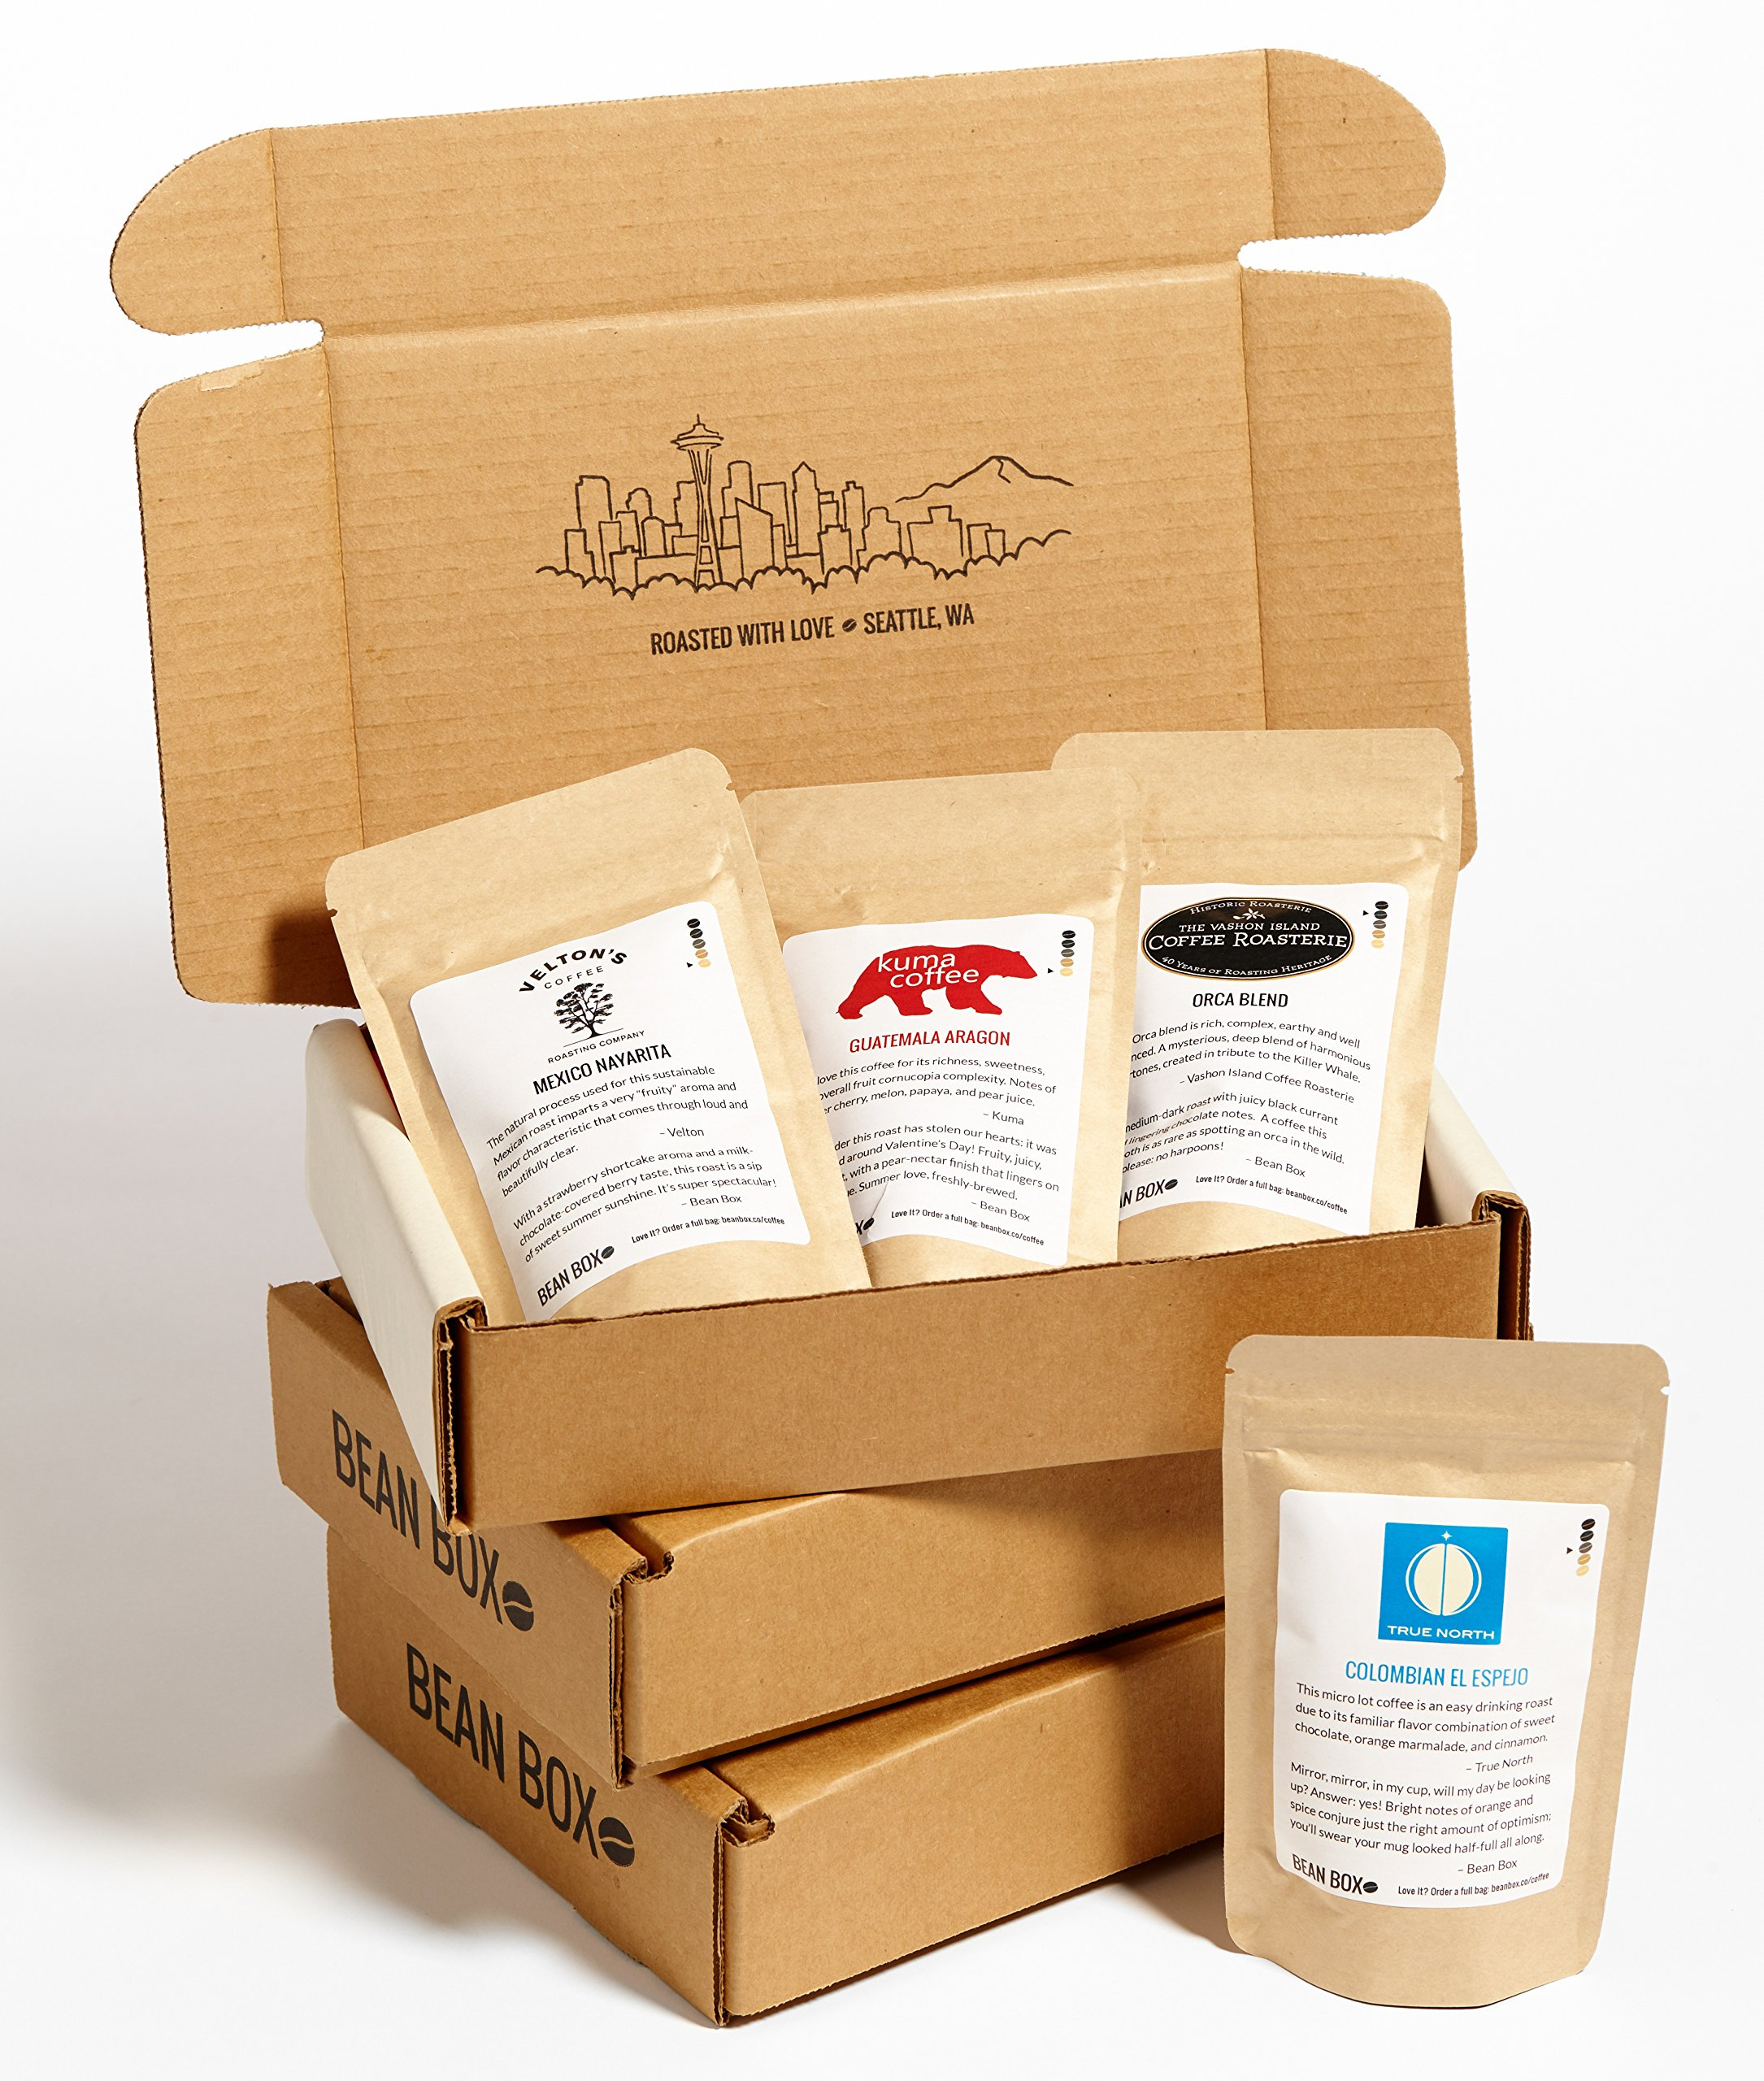 Bean Box Gourmet Decaf Roast Coffee Sampler - 3-Month Gift Subscription - (whole bean, 4 roasts every month) by Bean Box